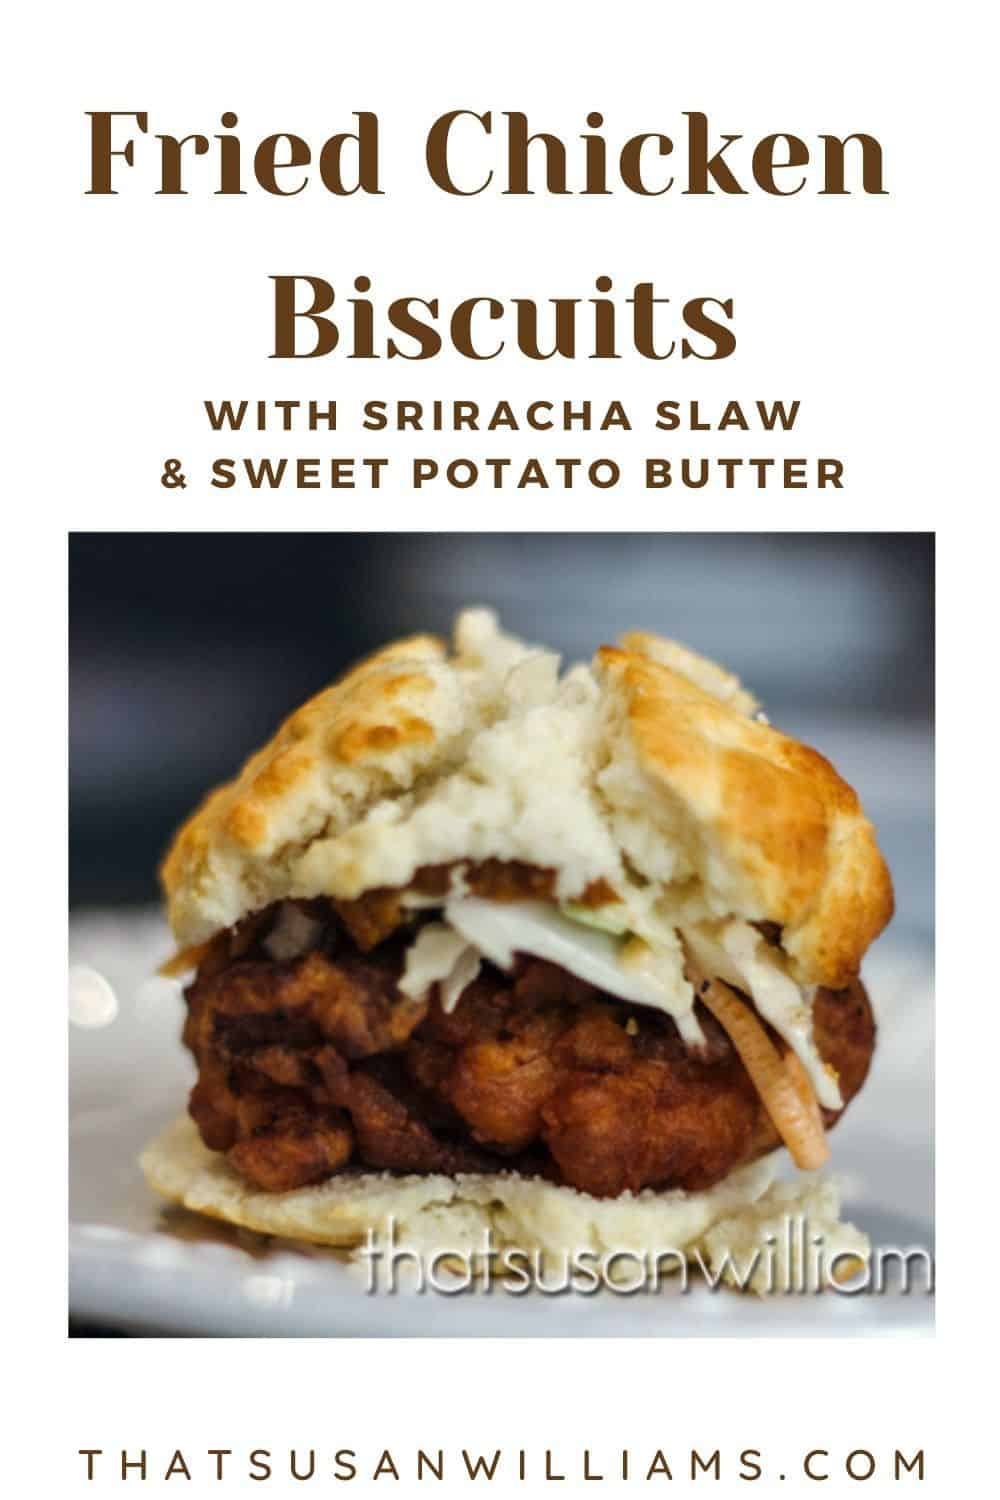 Fried Chicken Biscuits with Sriracha Slaw and Sweet Potato Butter